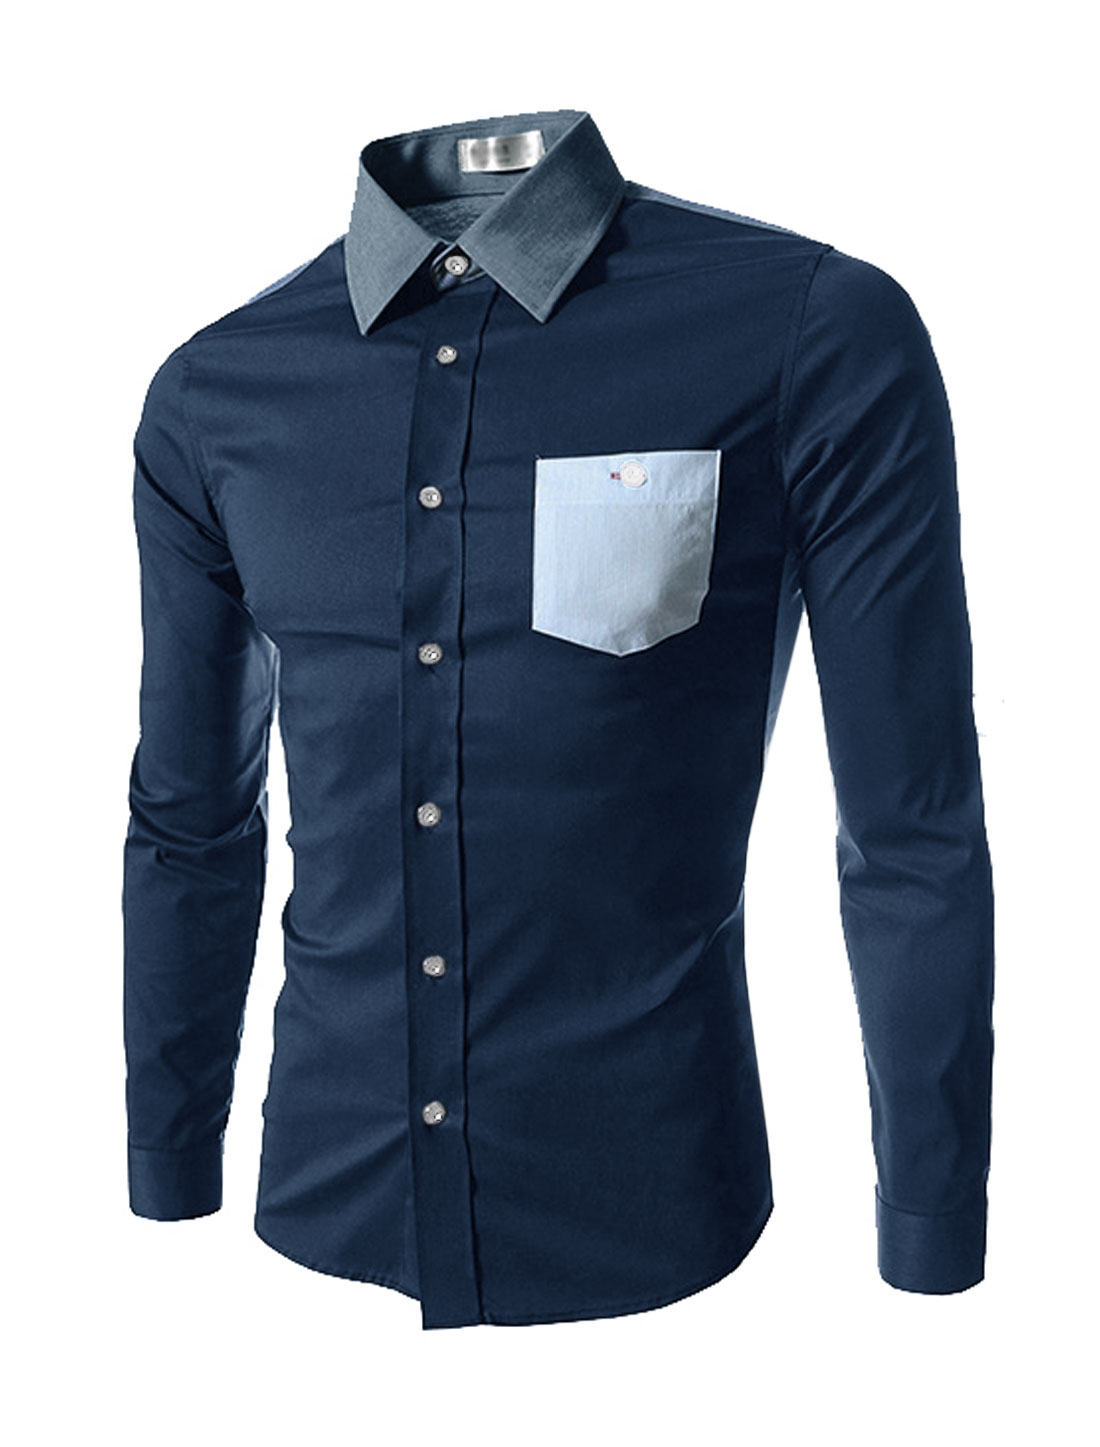 Men Long Sleeves Stripes Button Down Shirts Navy Blue M